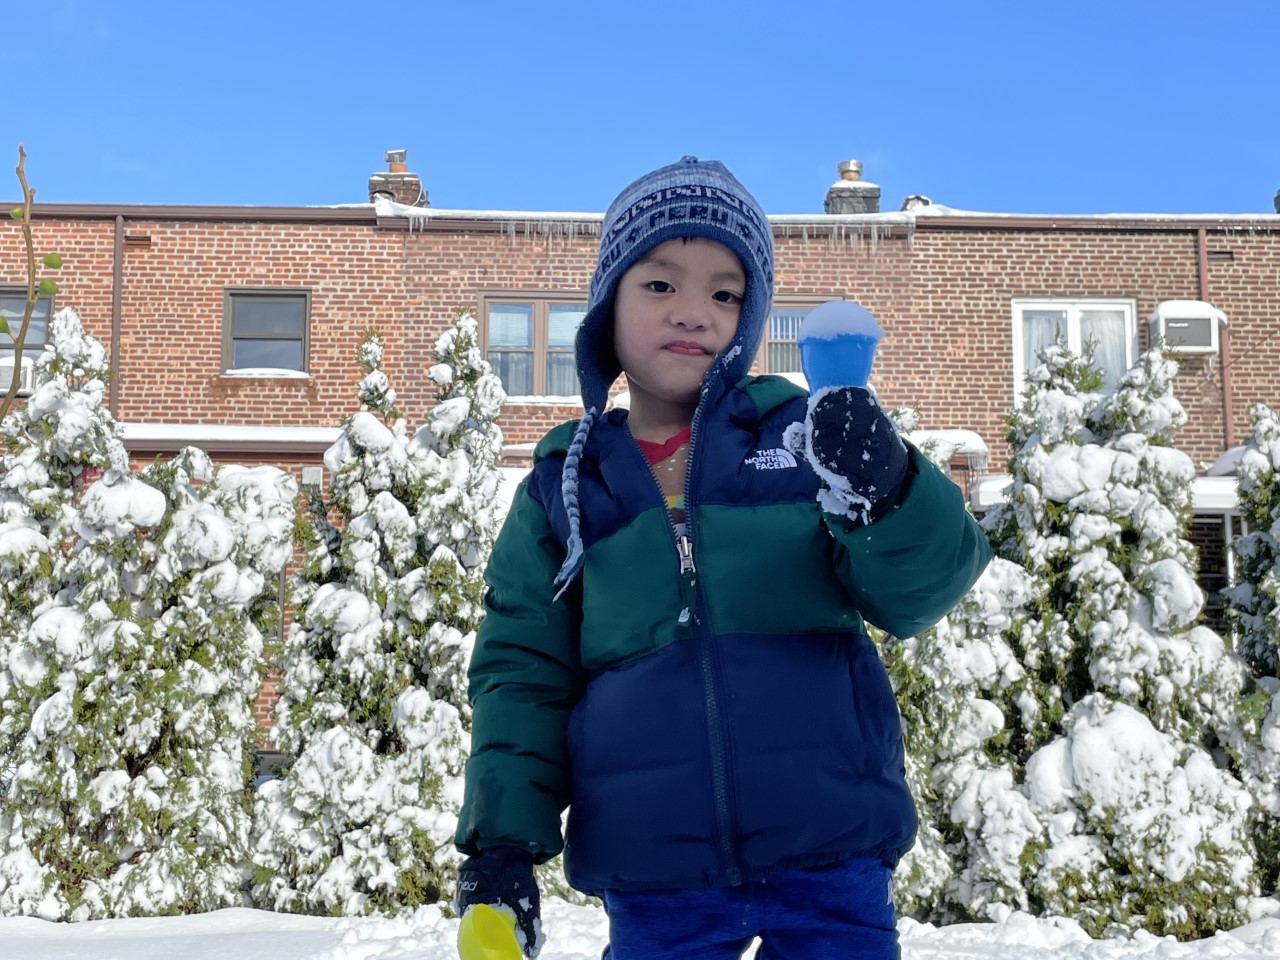 a boy in front of a building holding snow